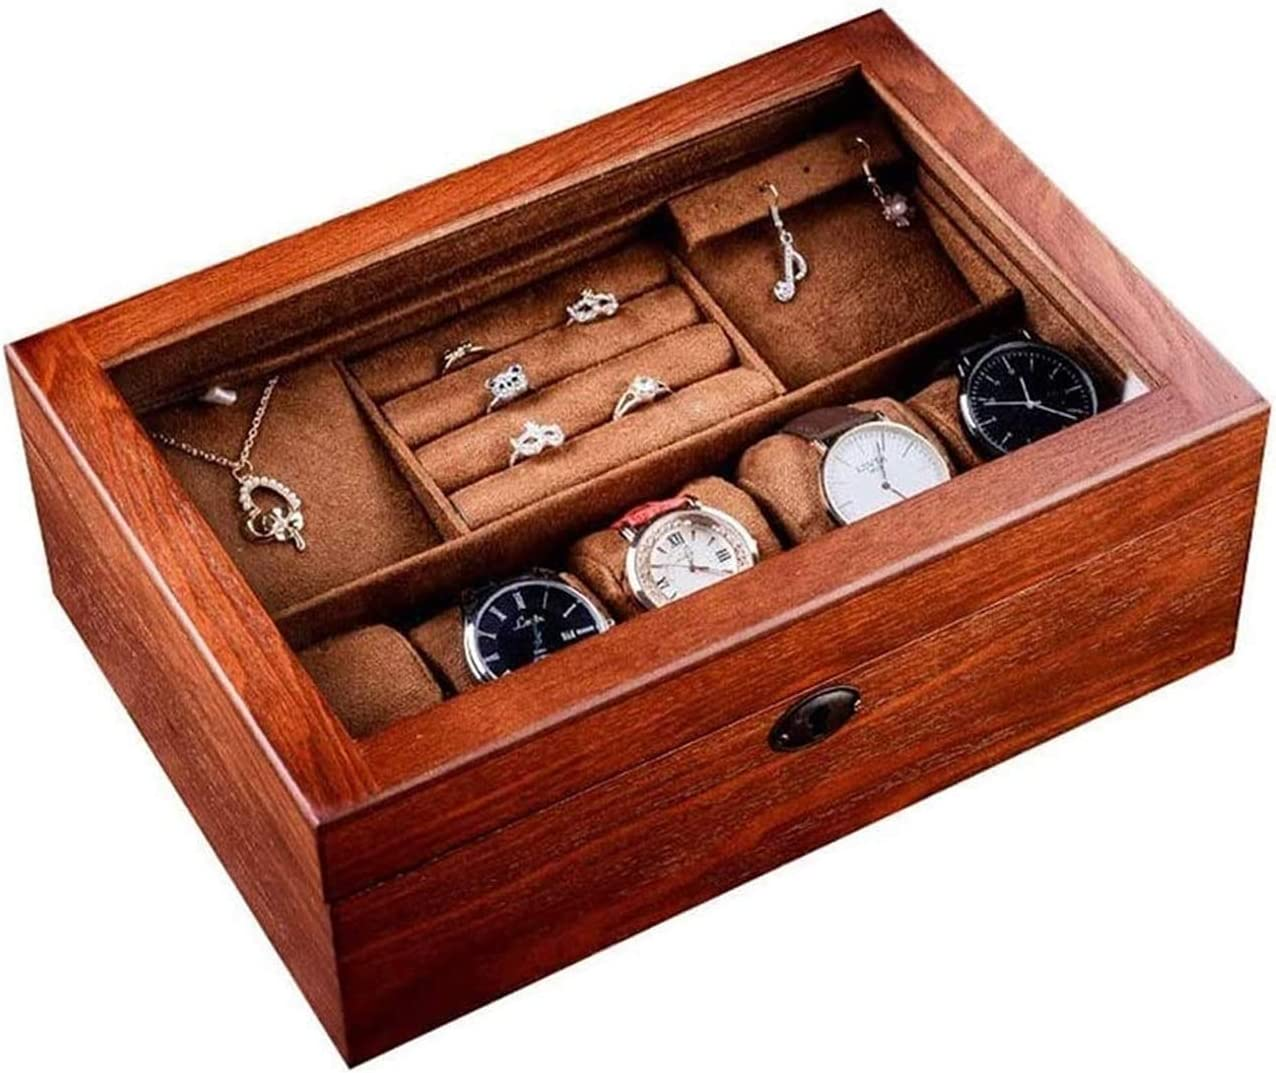 LHGH Jewelry Box 6 Philadelphia Mall Max 63% OFF Slots Watch D Wooden Topped Glass Case